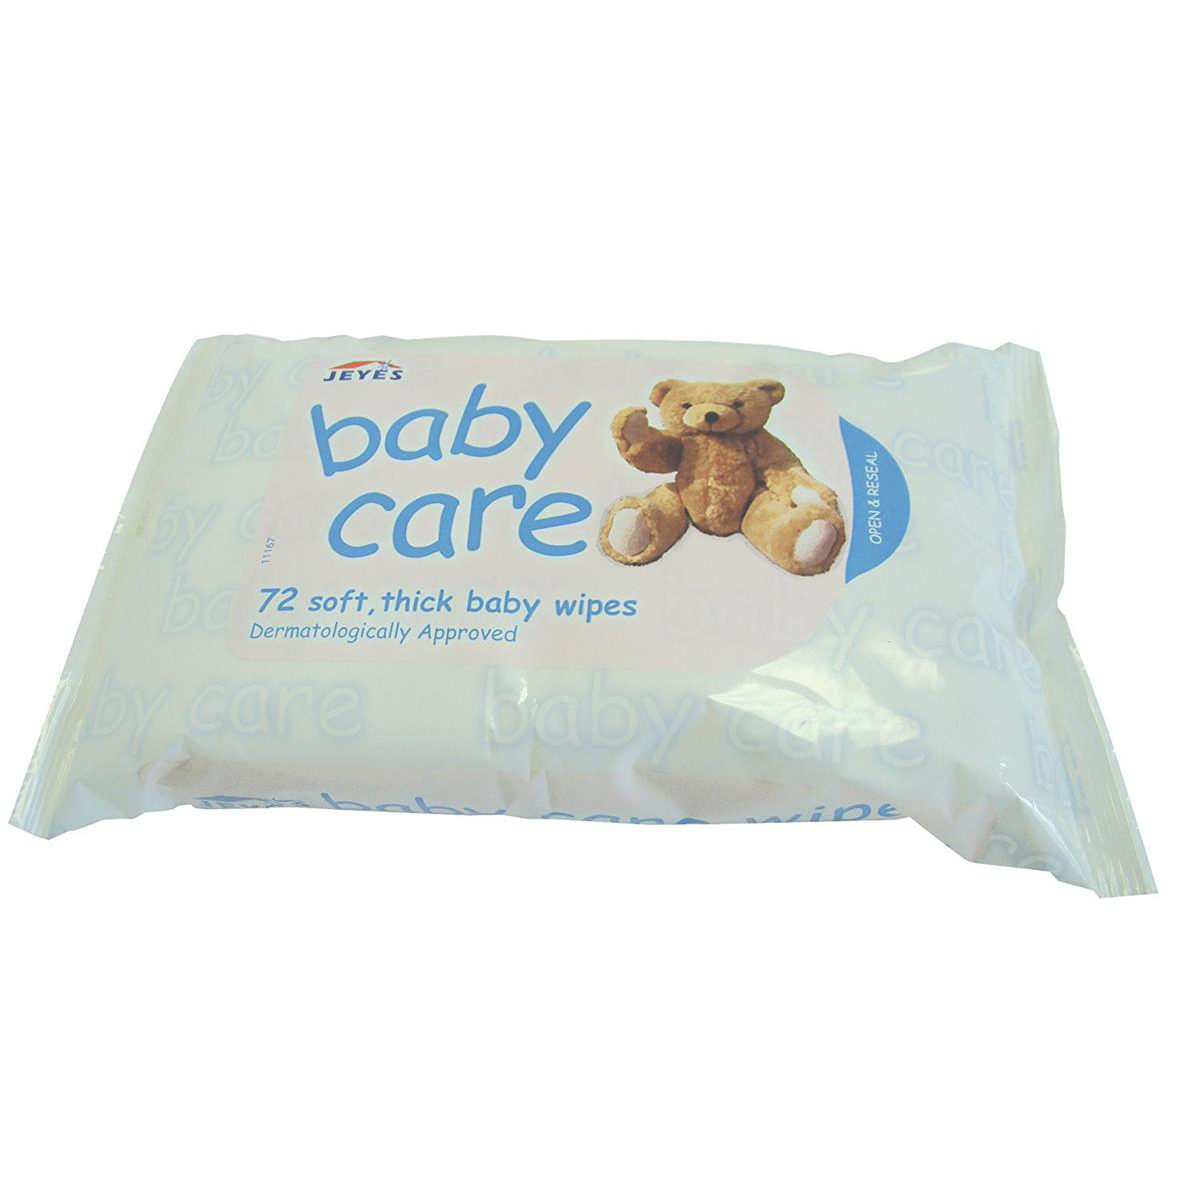 Jeyes Baby Wipes Soft Spun Lace Fabric Ref 0706063 Pack 72